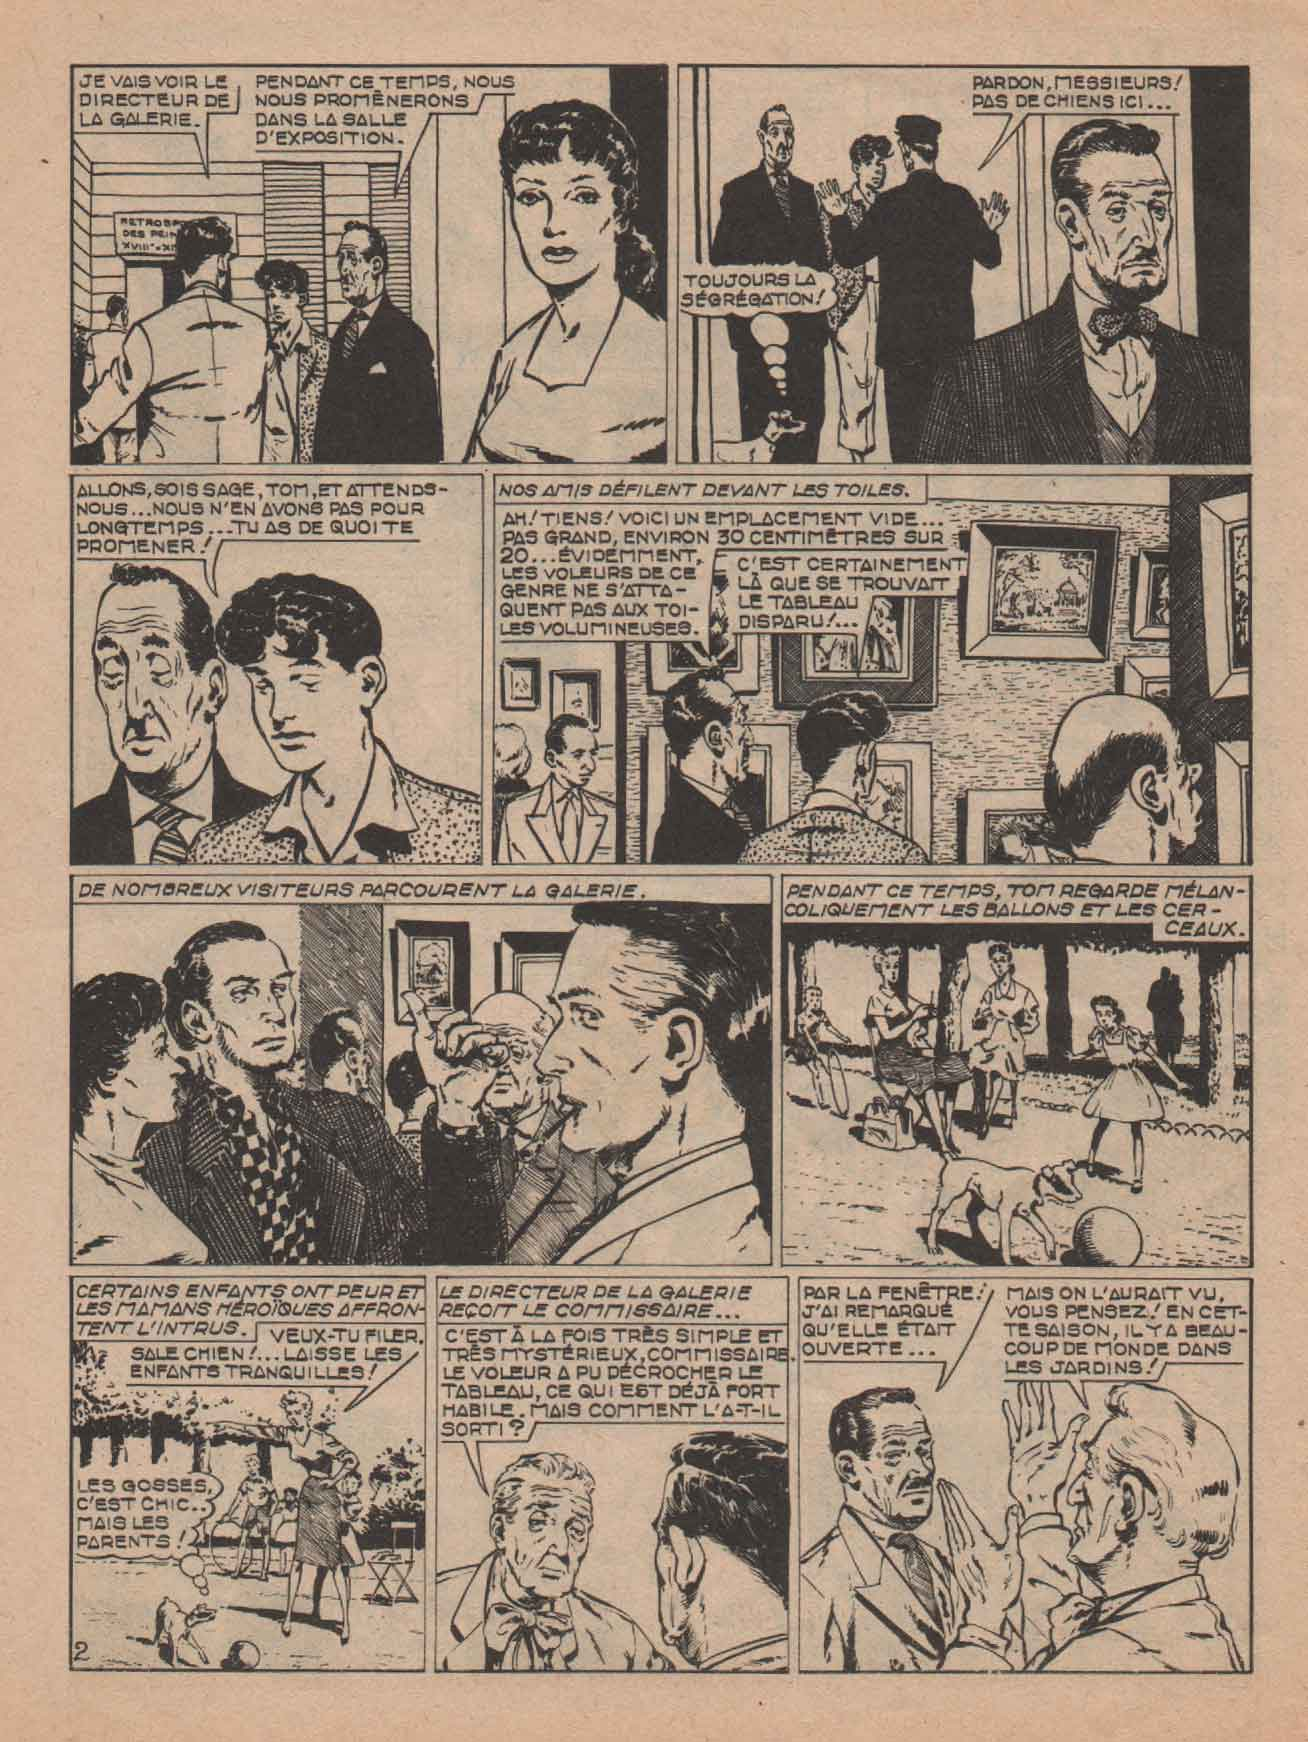 « Tim et Tom » Dynamic n° 26 (09/1960).